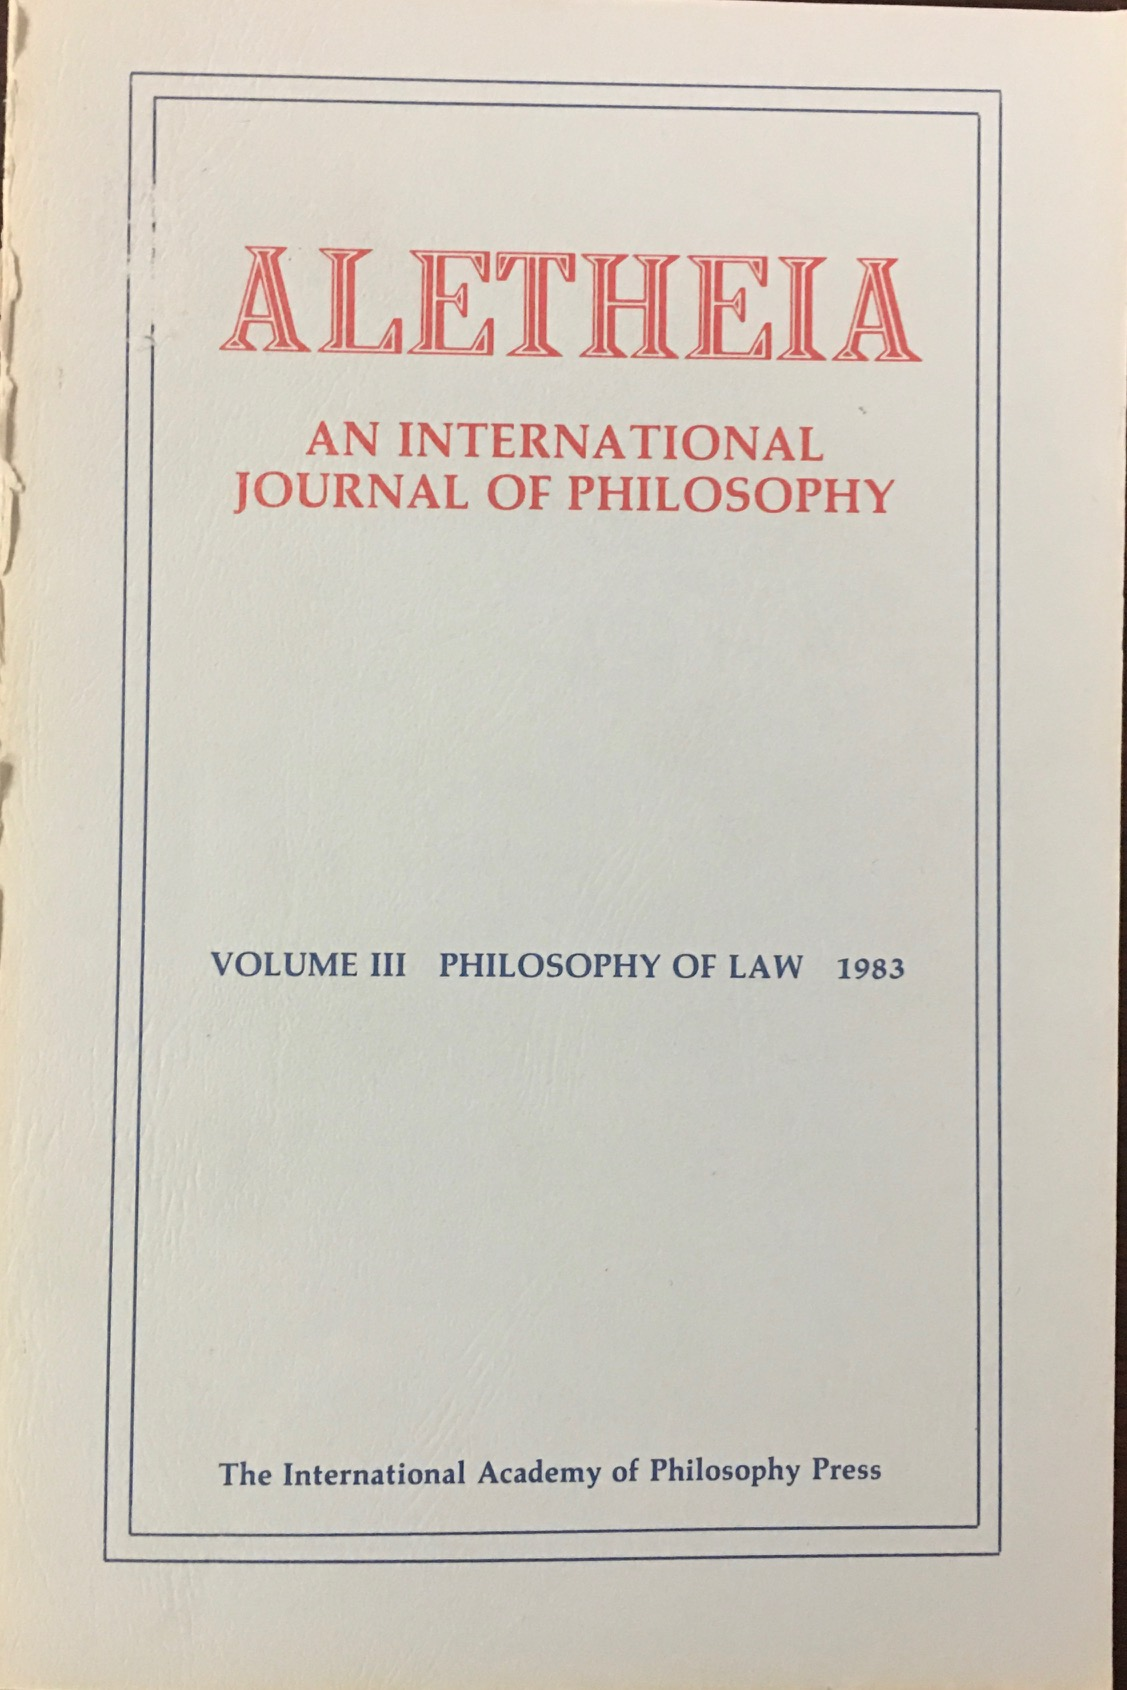 Image for Aletheia: An International Journal of Philosophy, Volume III - The Philosophy of Law (1983)